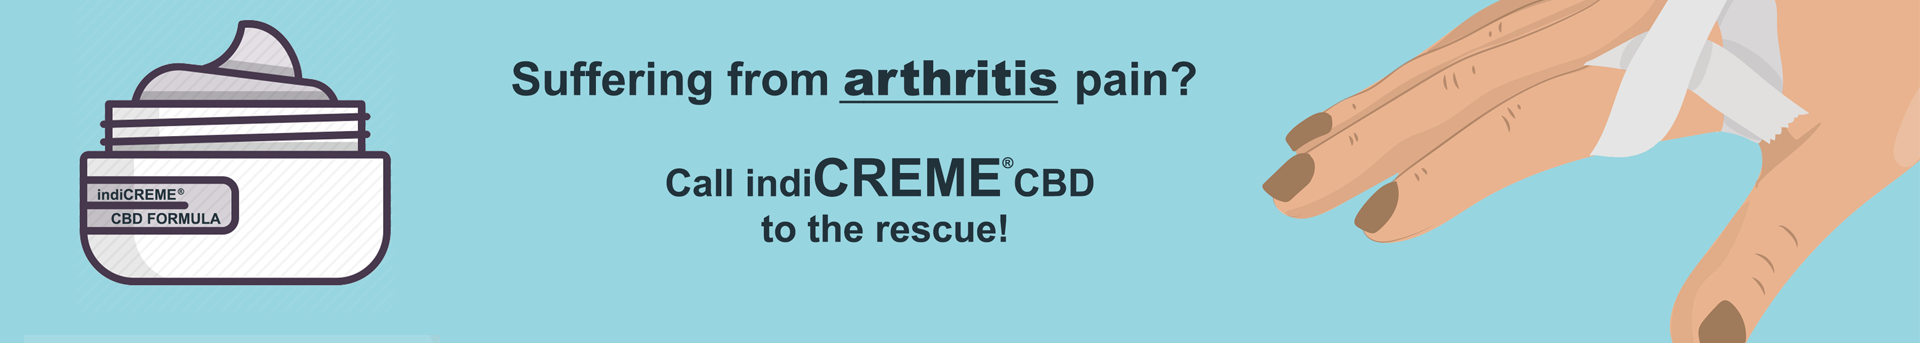 ANTI ARTHRITIS PAIN RELIEF ALL NATURAL WITH CBD AND HEMP